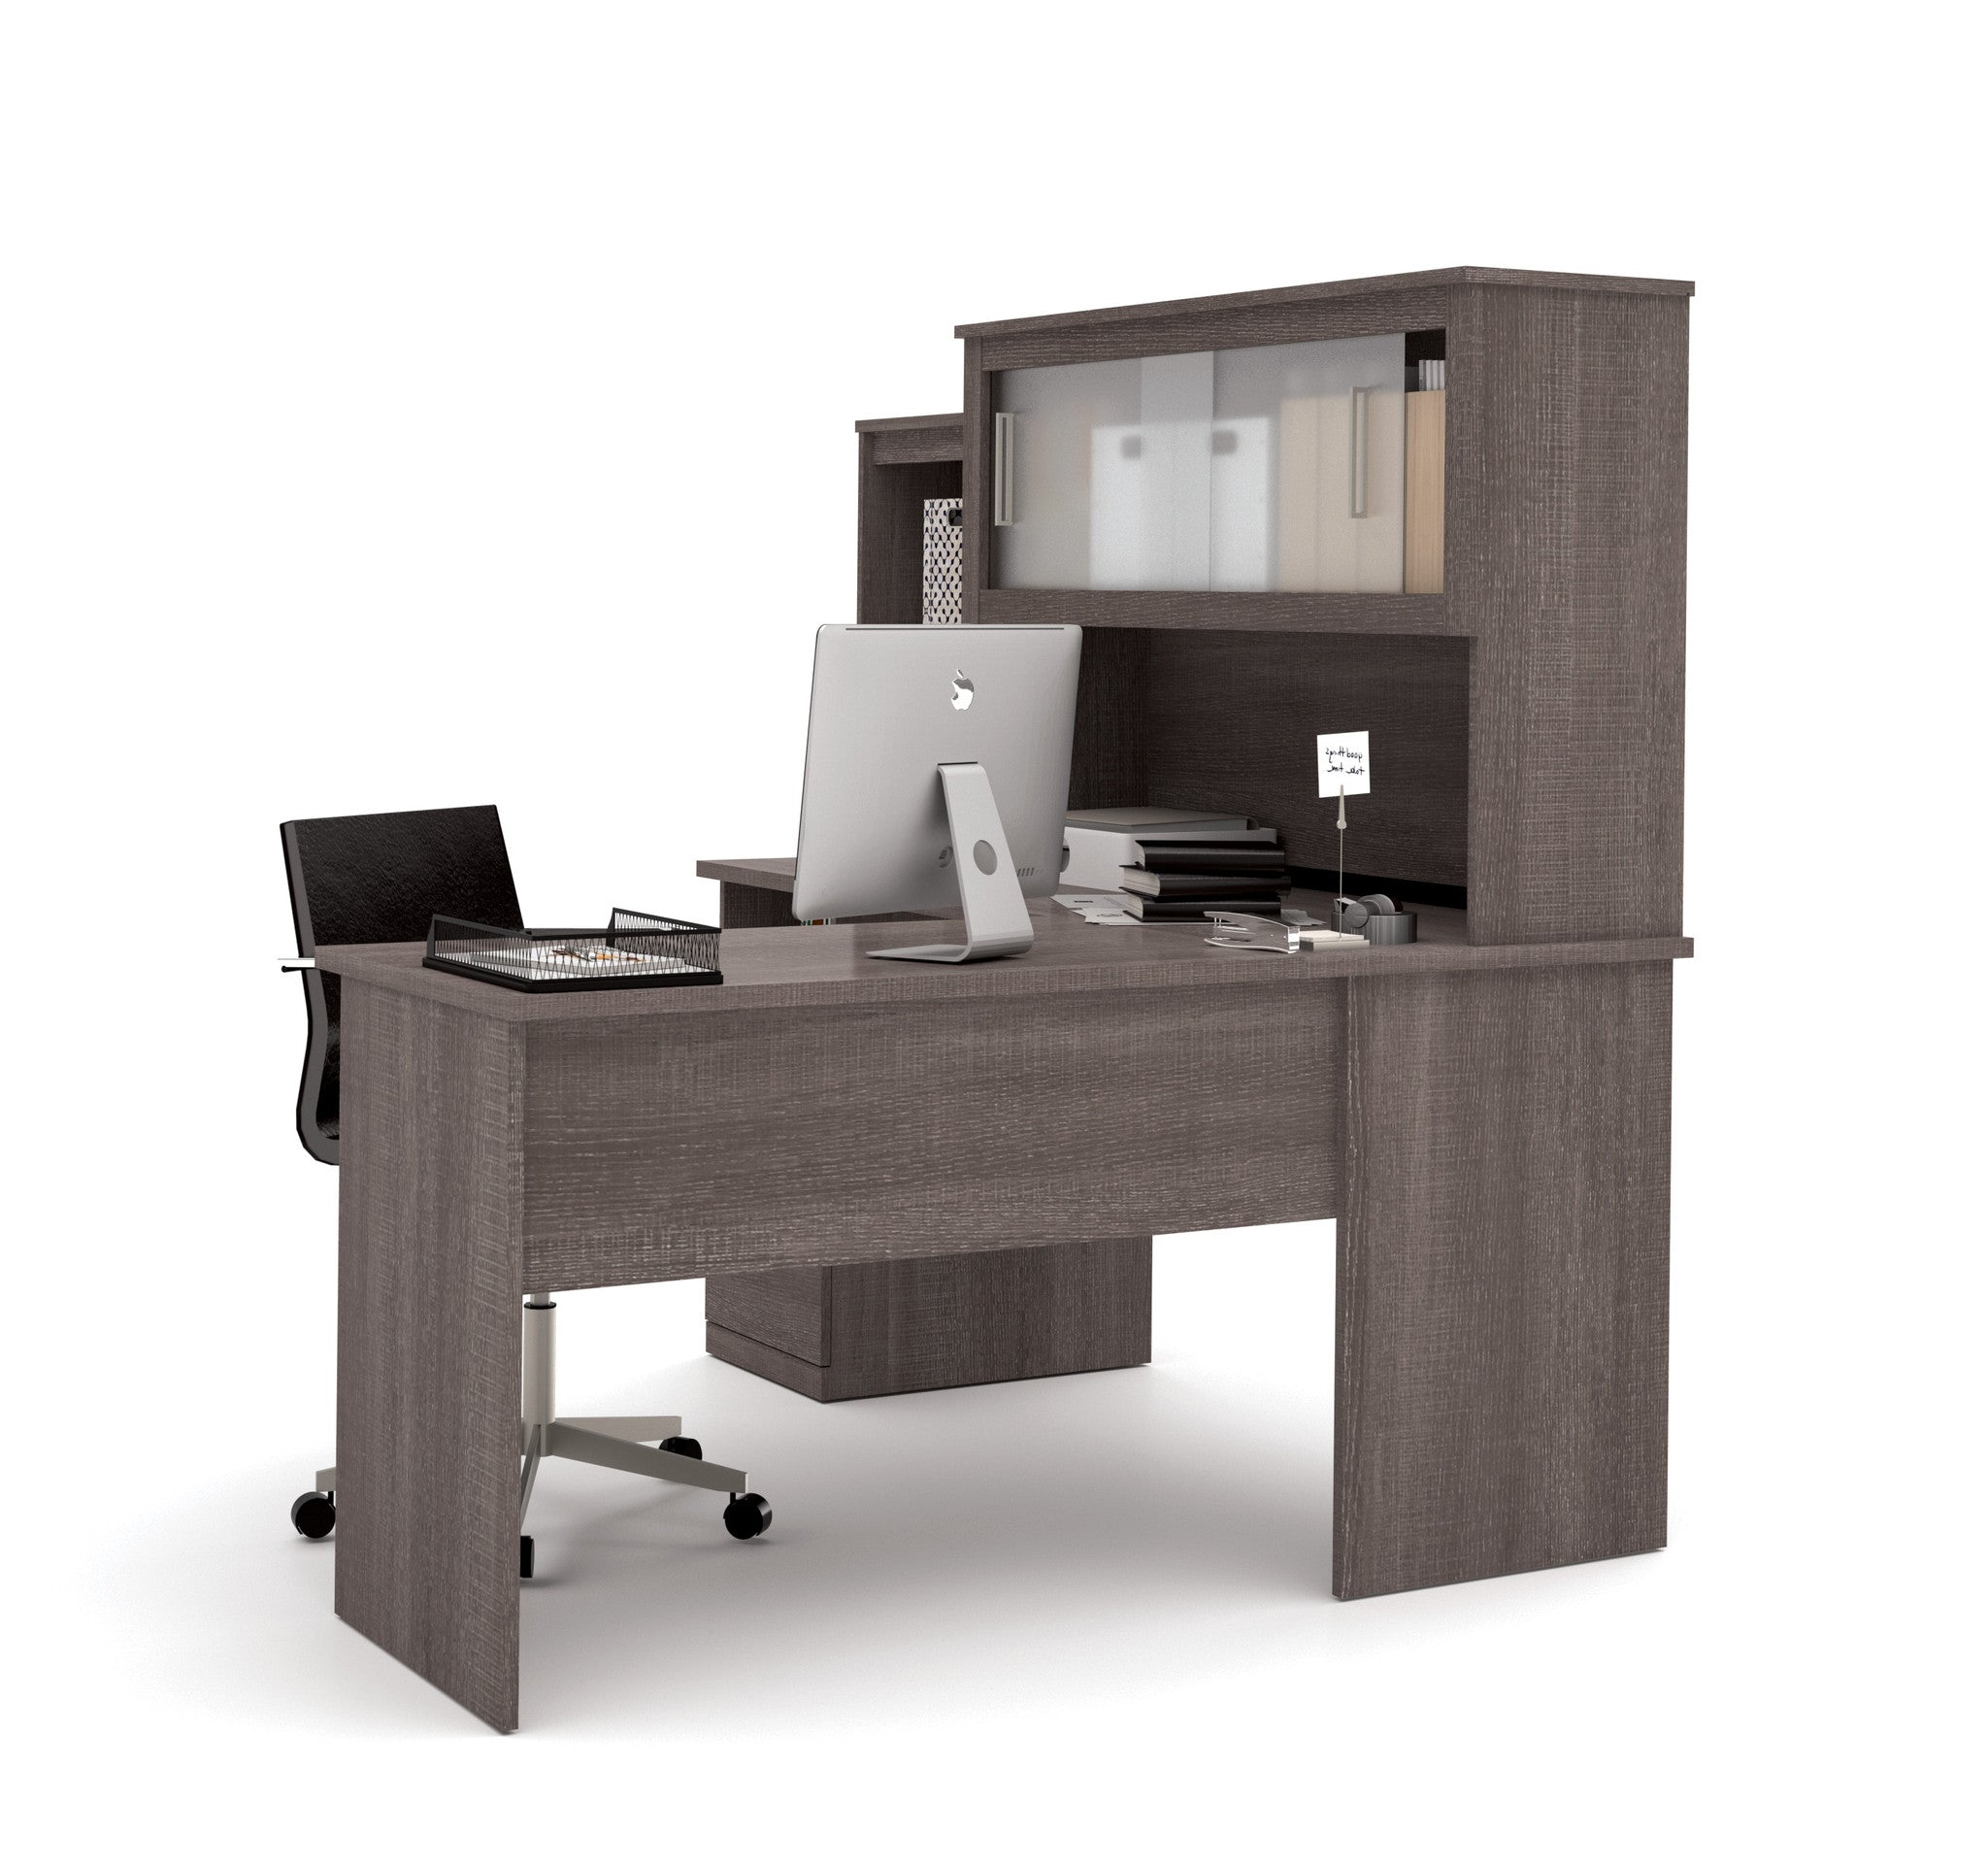 table writing skookum desk l white shaped computer most office grey corner flair gray